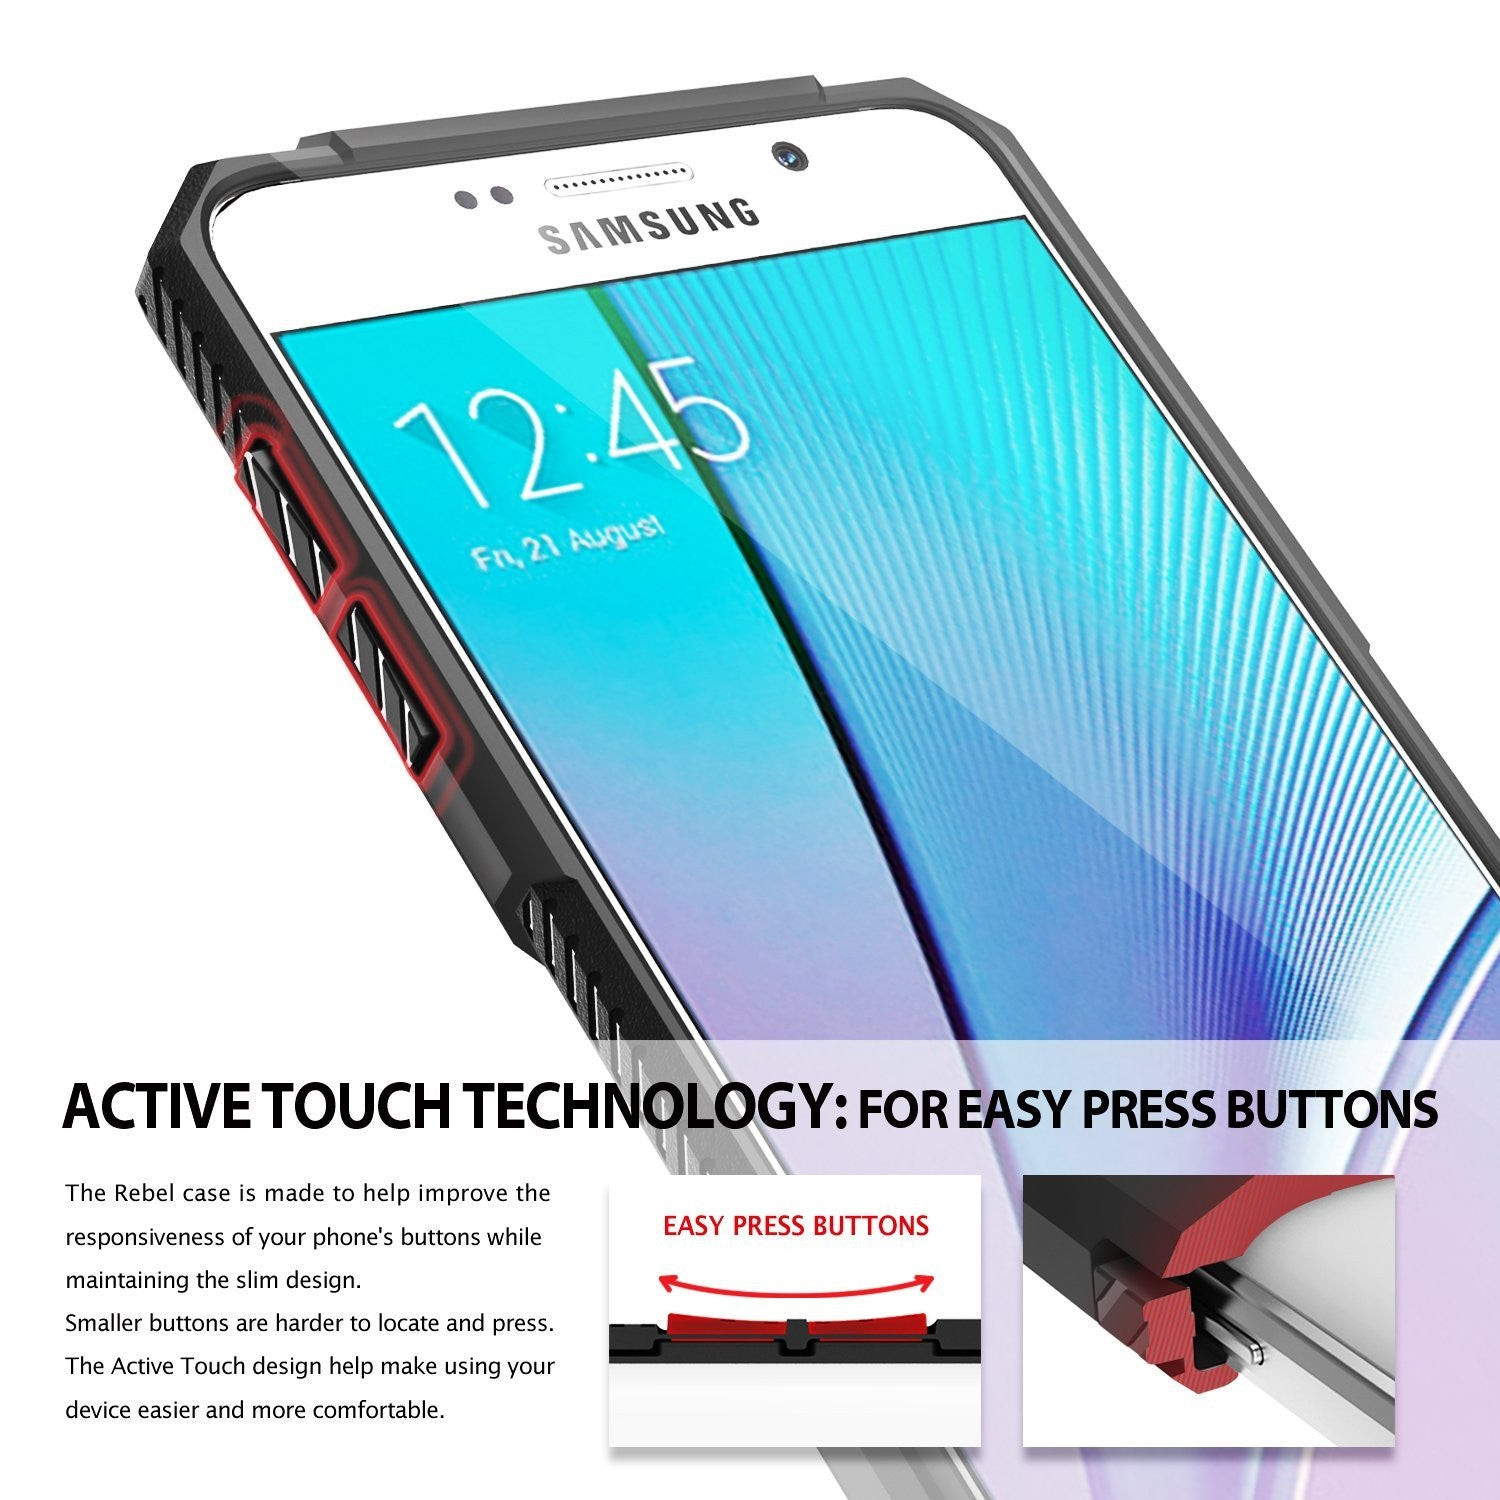 active touch technology